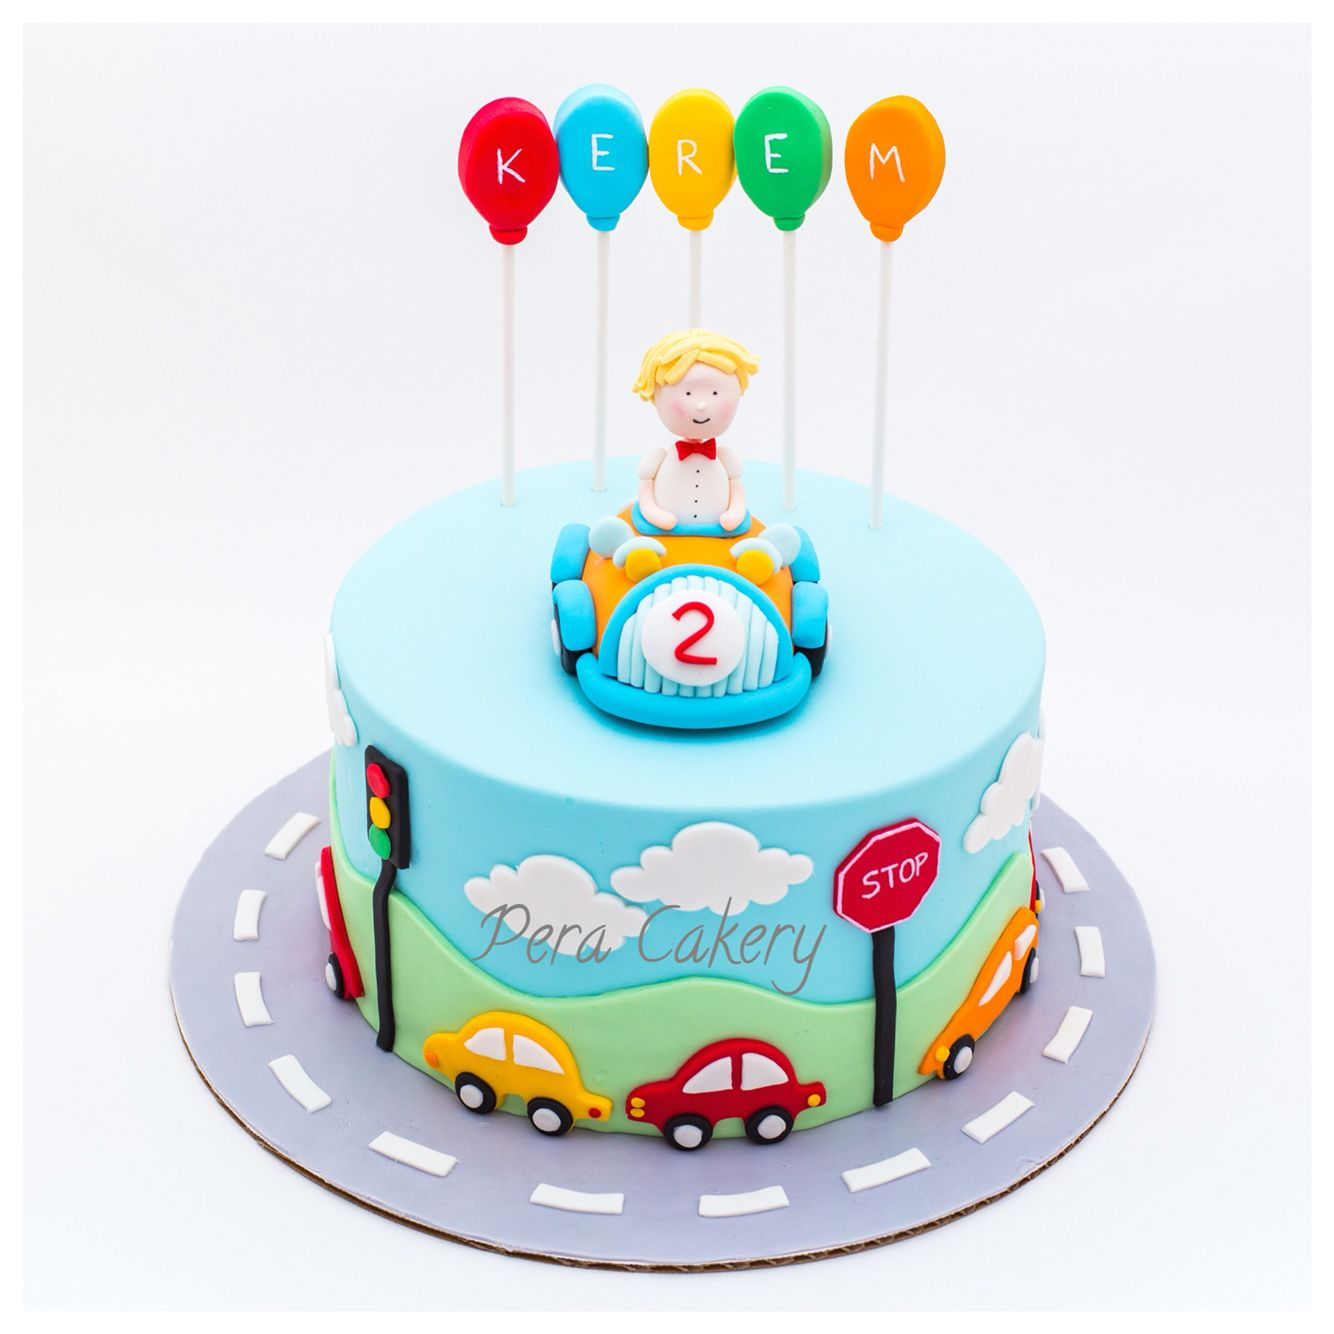 Car Cake For A 2 Year Old Boy Pera Cakery Cakes Pinterest